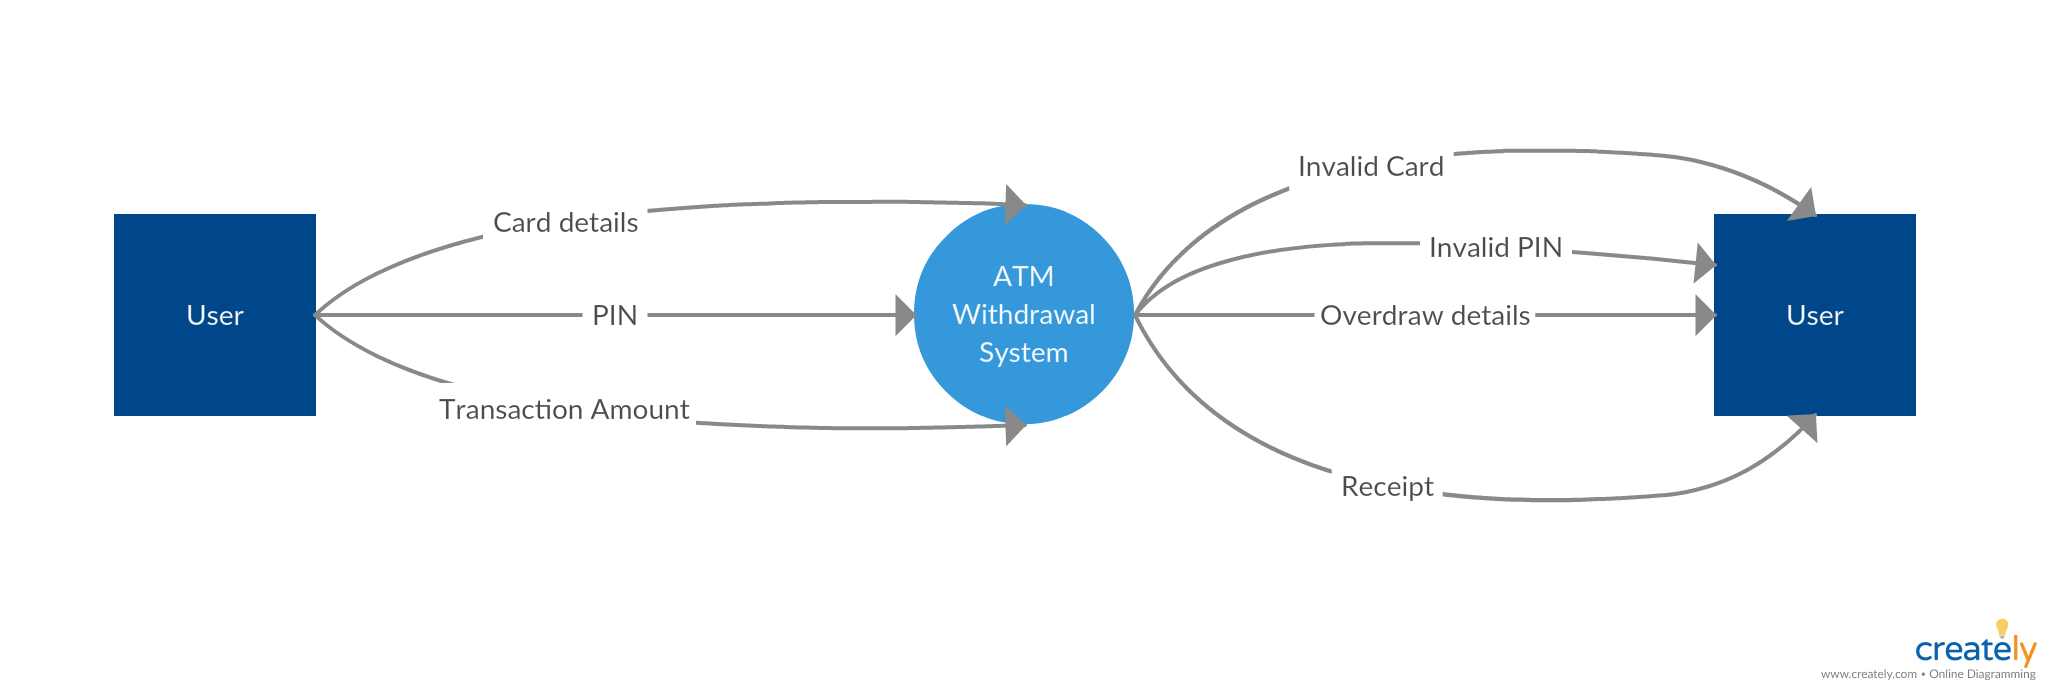 data flow diagram and context honeywell vc7931 actuator wiring atm cash withdrawal system template you can use this to modify by simply clicking on